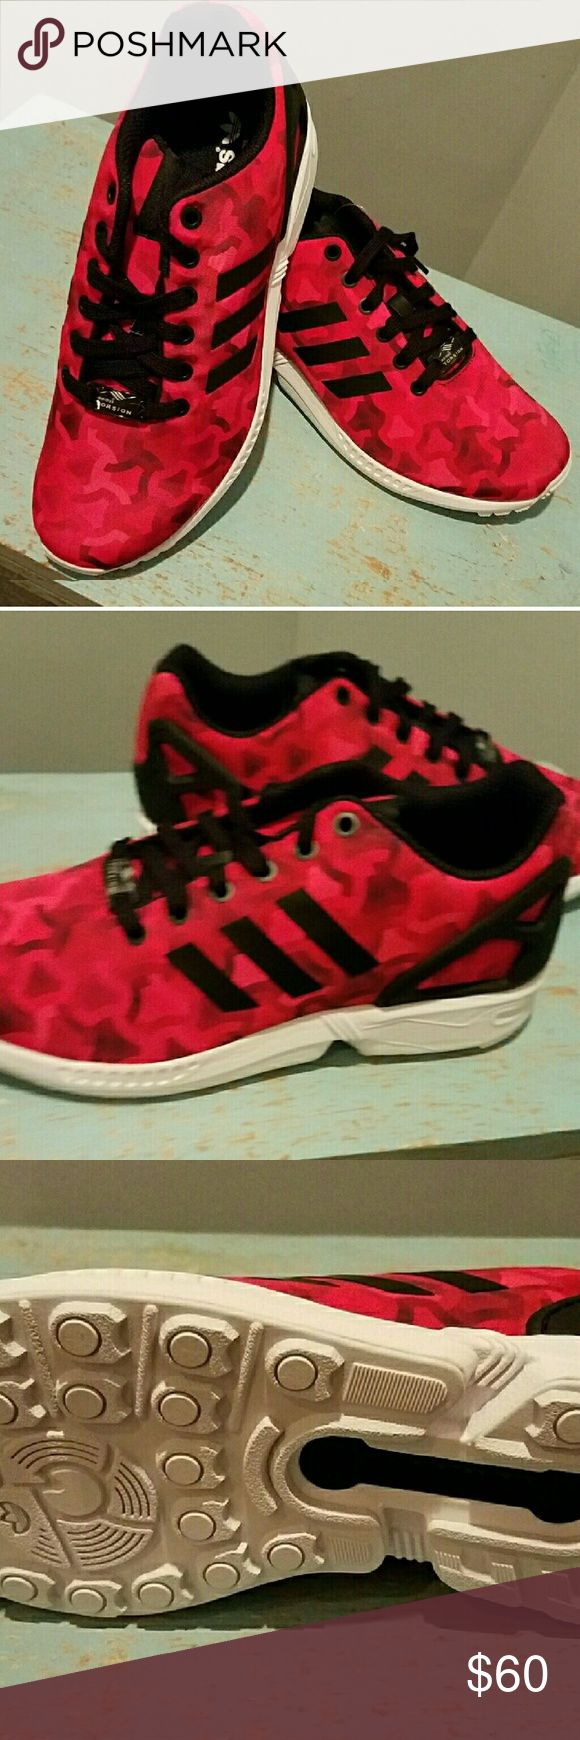 Zx Flux Red Black NWT Authentic Shoes Sneakers